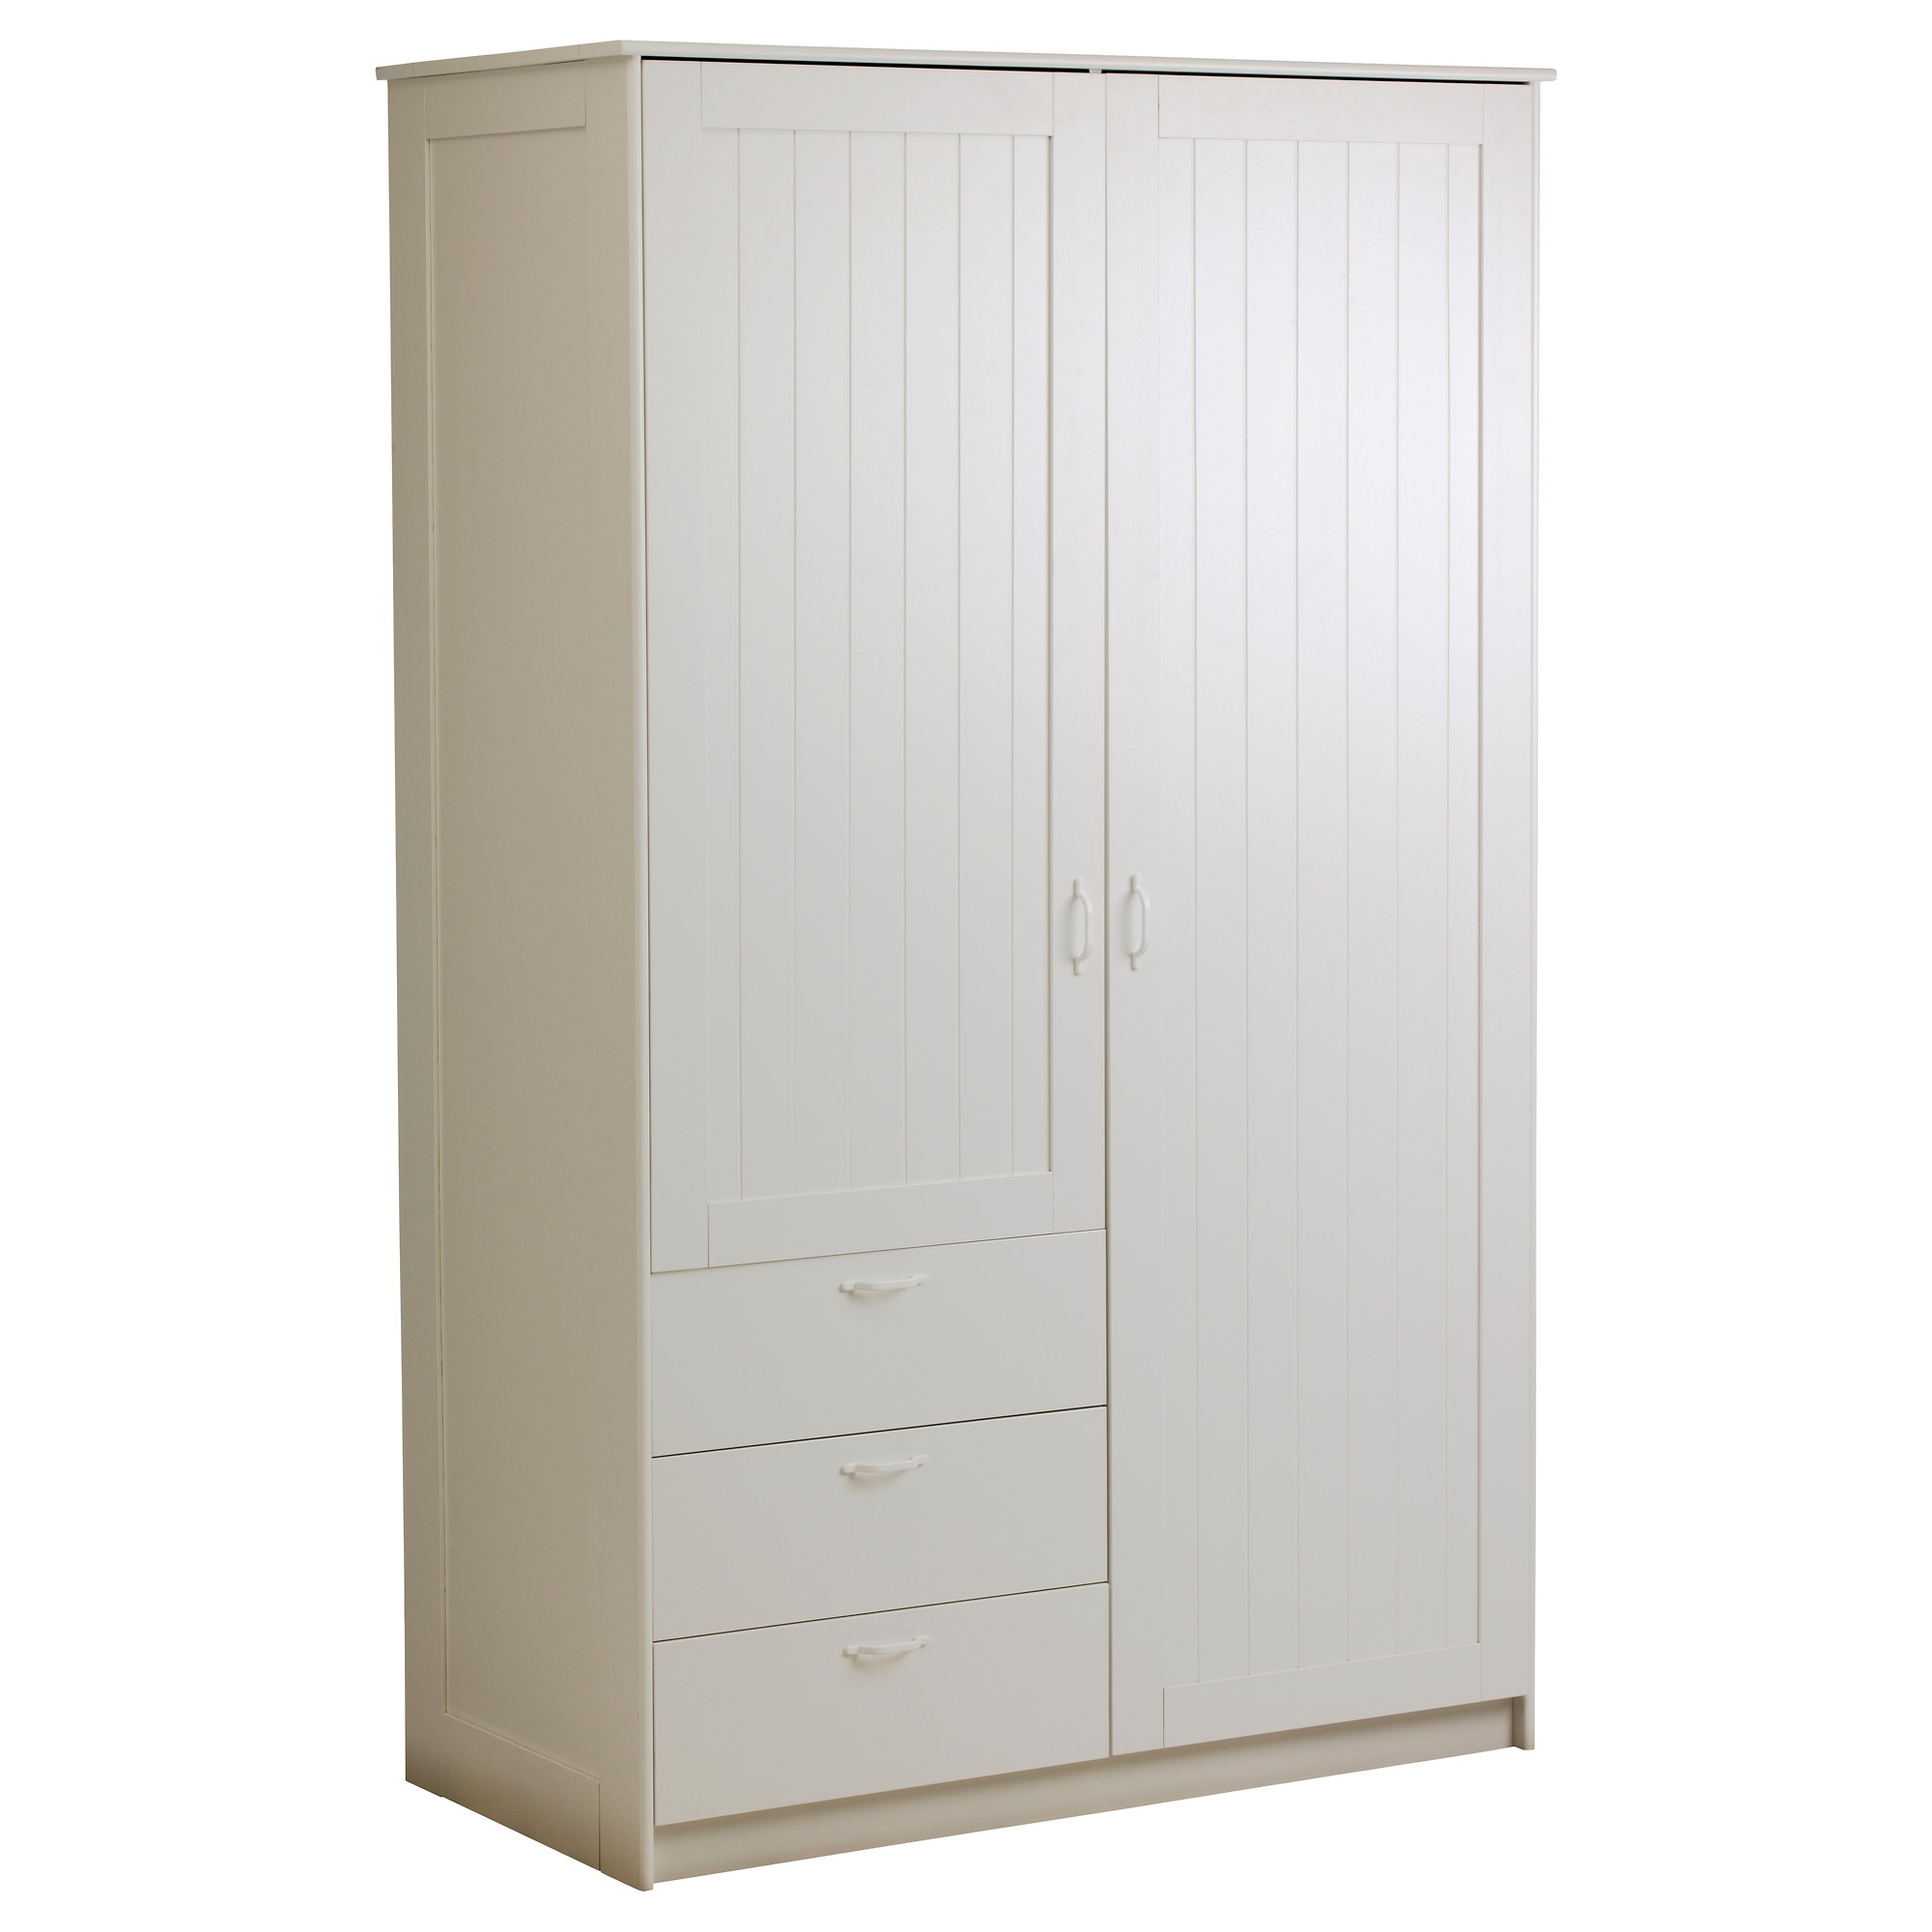 3 Door White Wardrobes With Drawers Regarding Current White 3 Door Wardrobe With Drawers Sliding Uk Children's Childs (View 14 of 15)